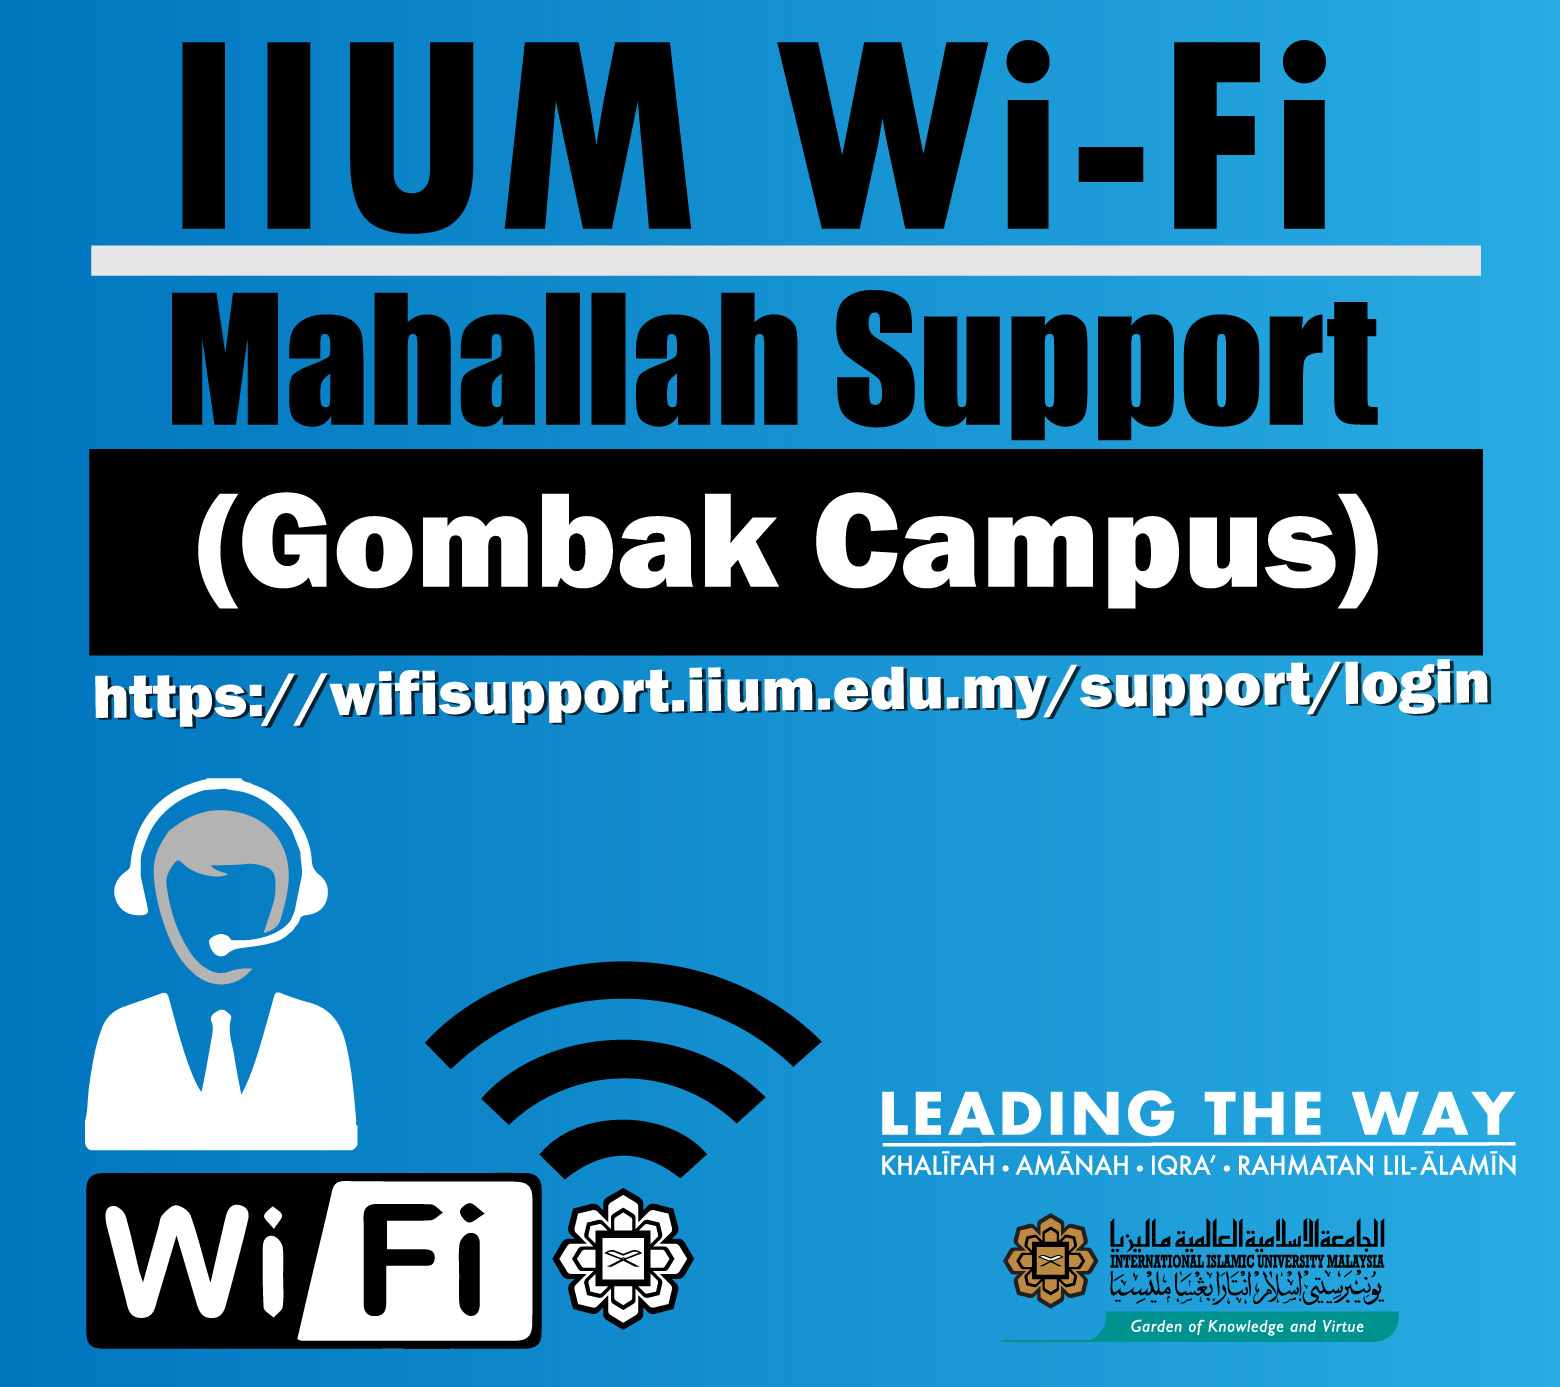 wifisupport for gombak campus